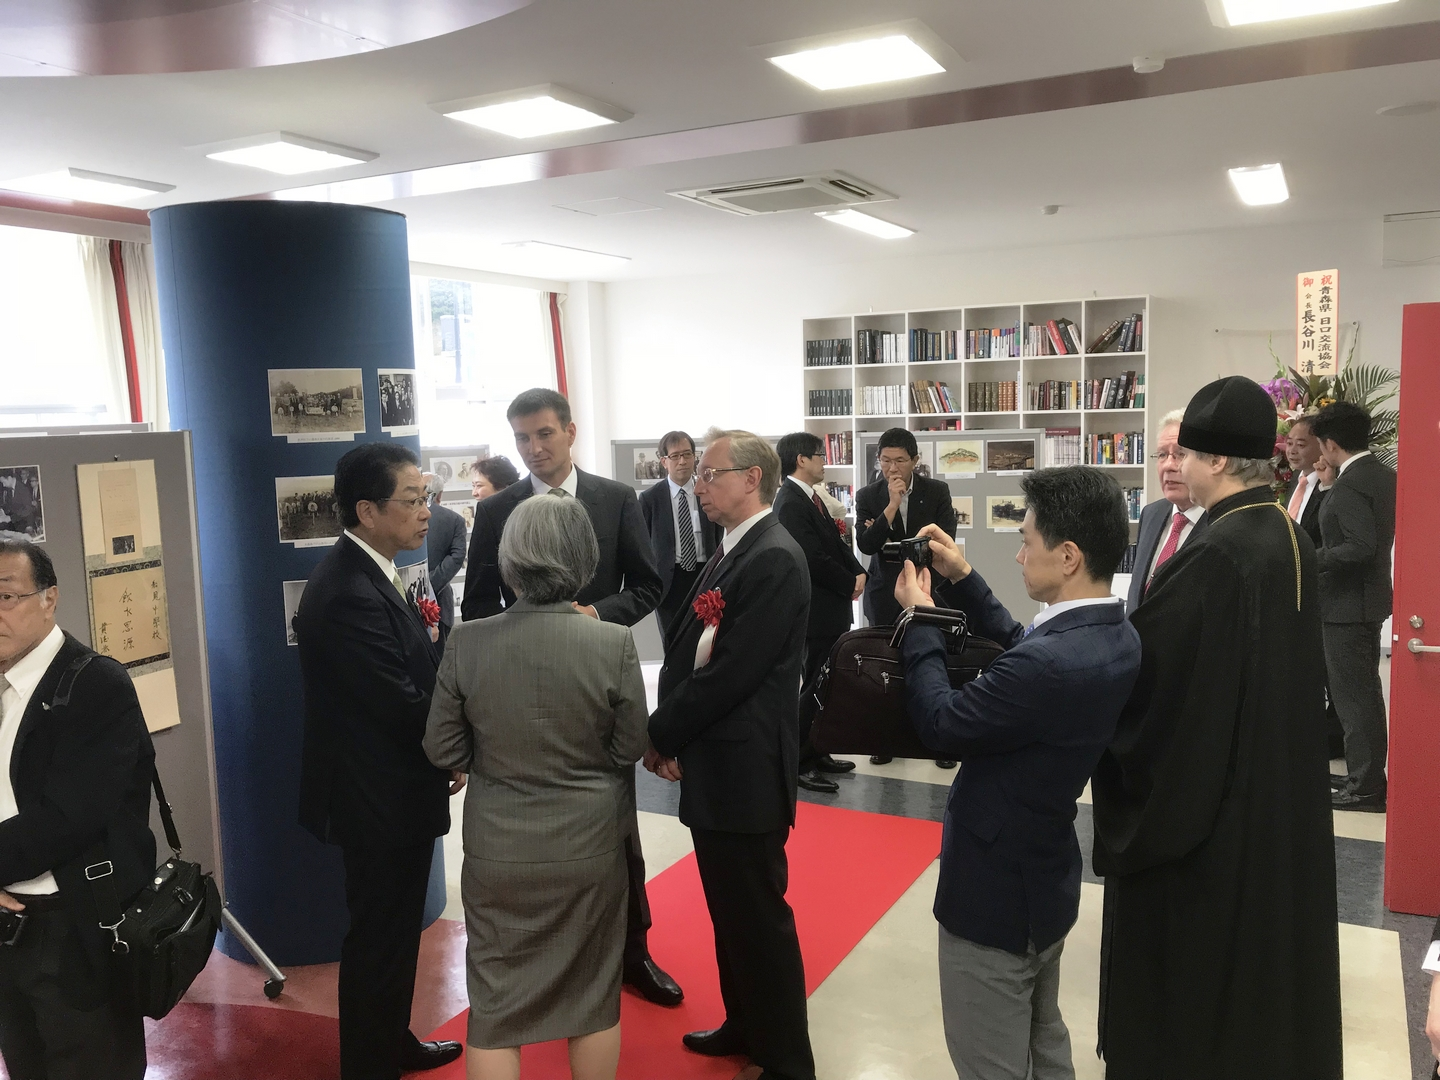 FEFU Branch Campus Hakodate Hosts Japan-Russia Photo Exhibition dedicated to the 160th anniversary of founding the Russian Imperial Consulate in Hakodate